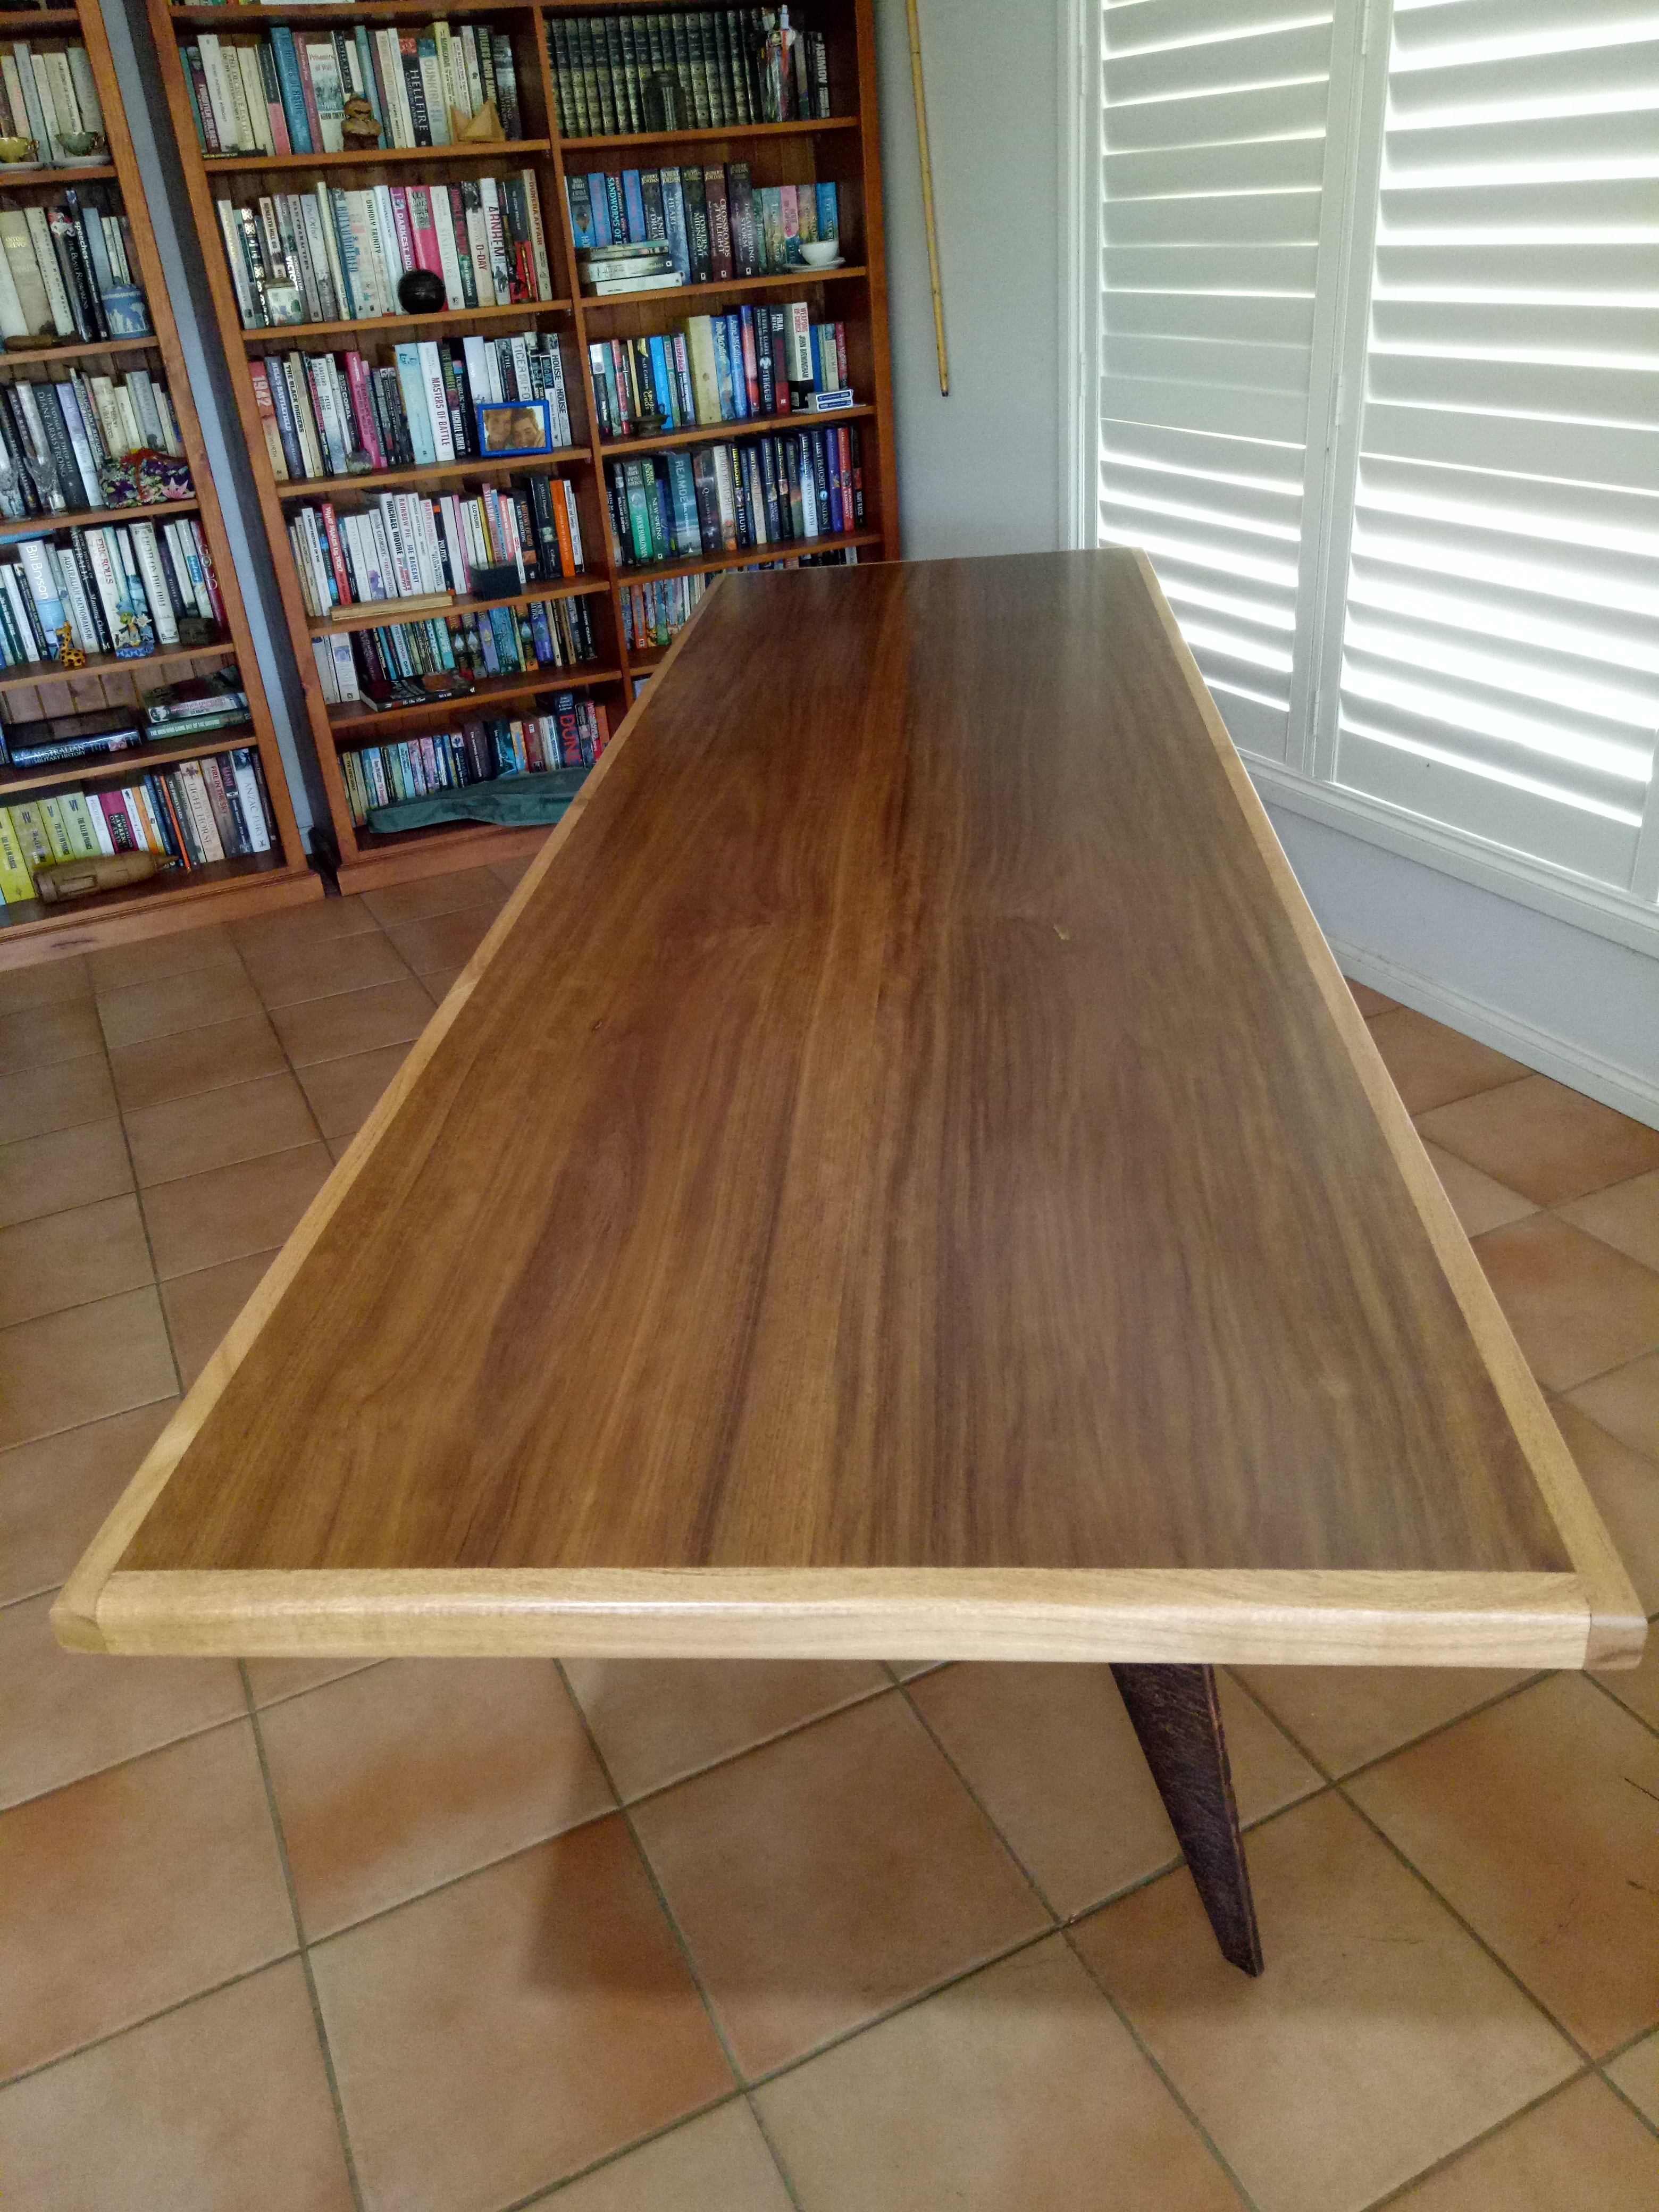 Unstable Table. Not.